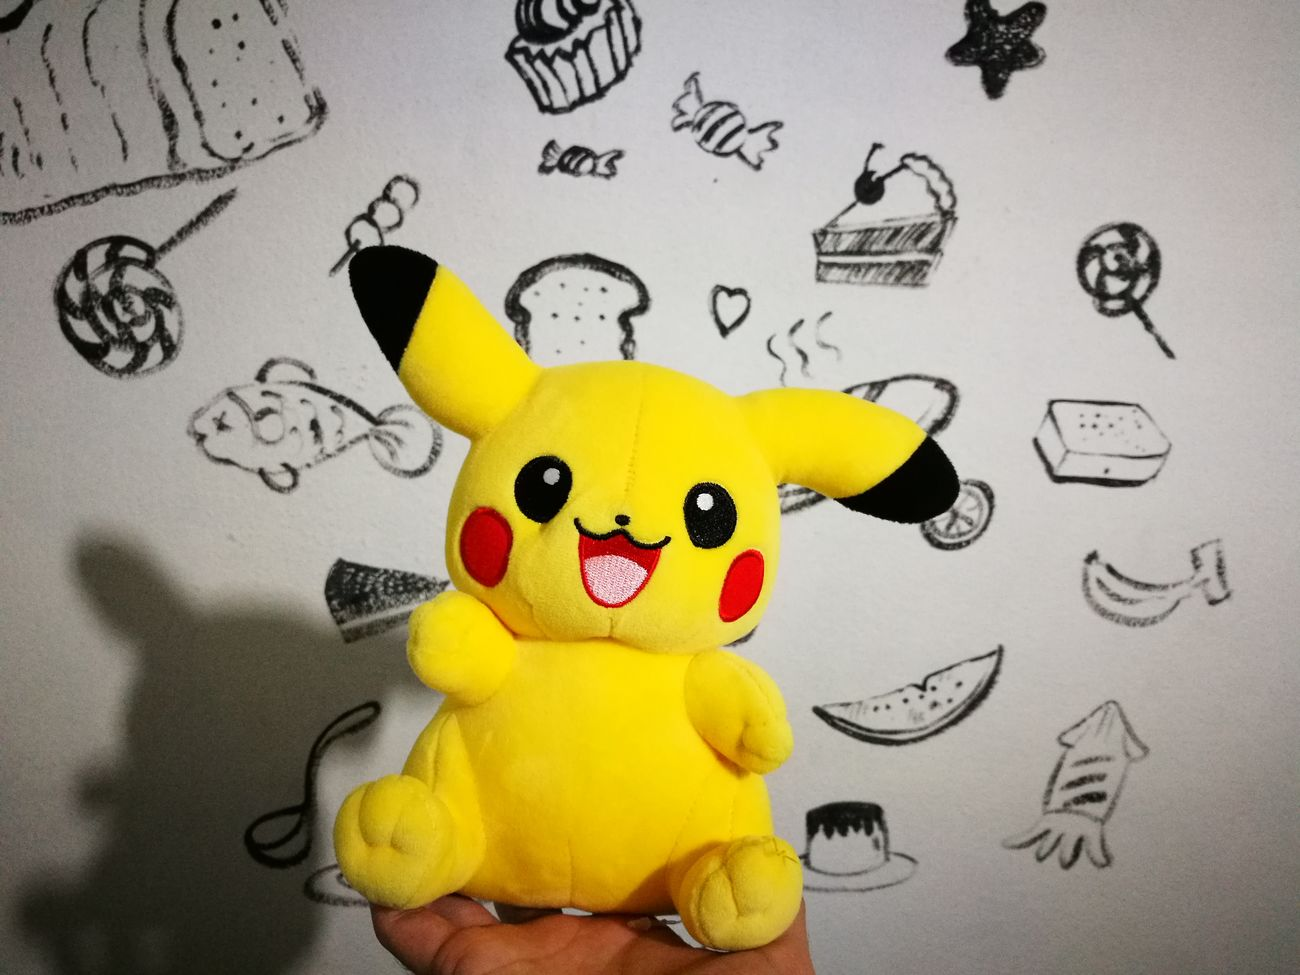 My roommate. Pikachu Thailand Bedroom